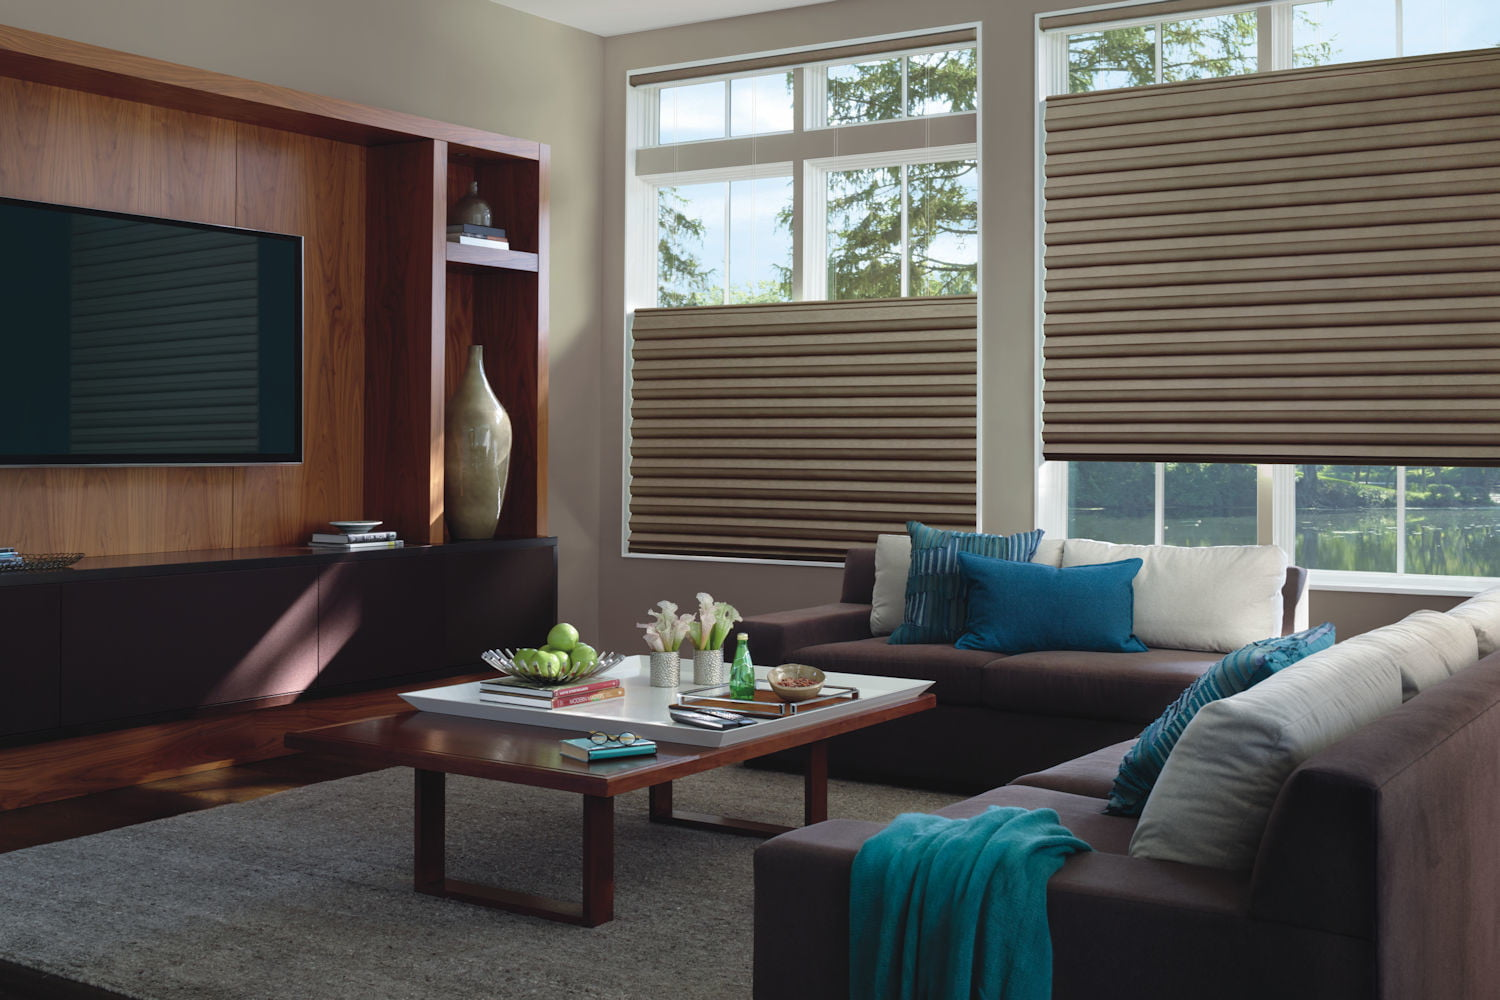 Hunter Douglas smart blinds and shades blot out the sun, but come at a cost